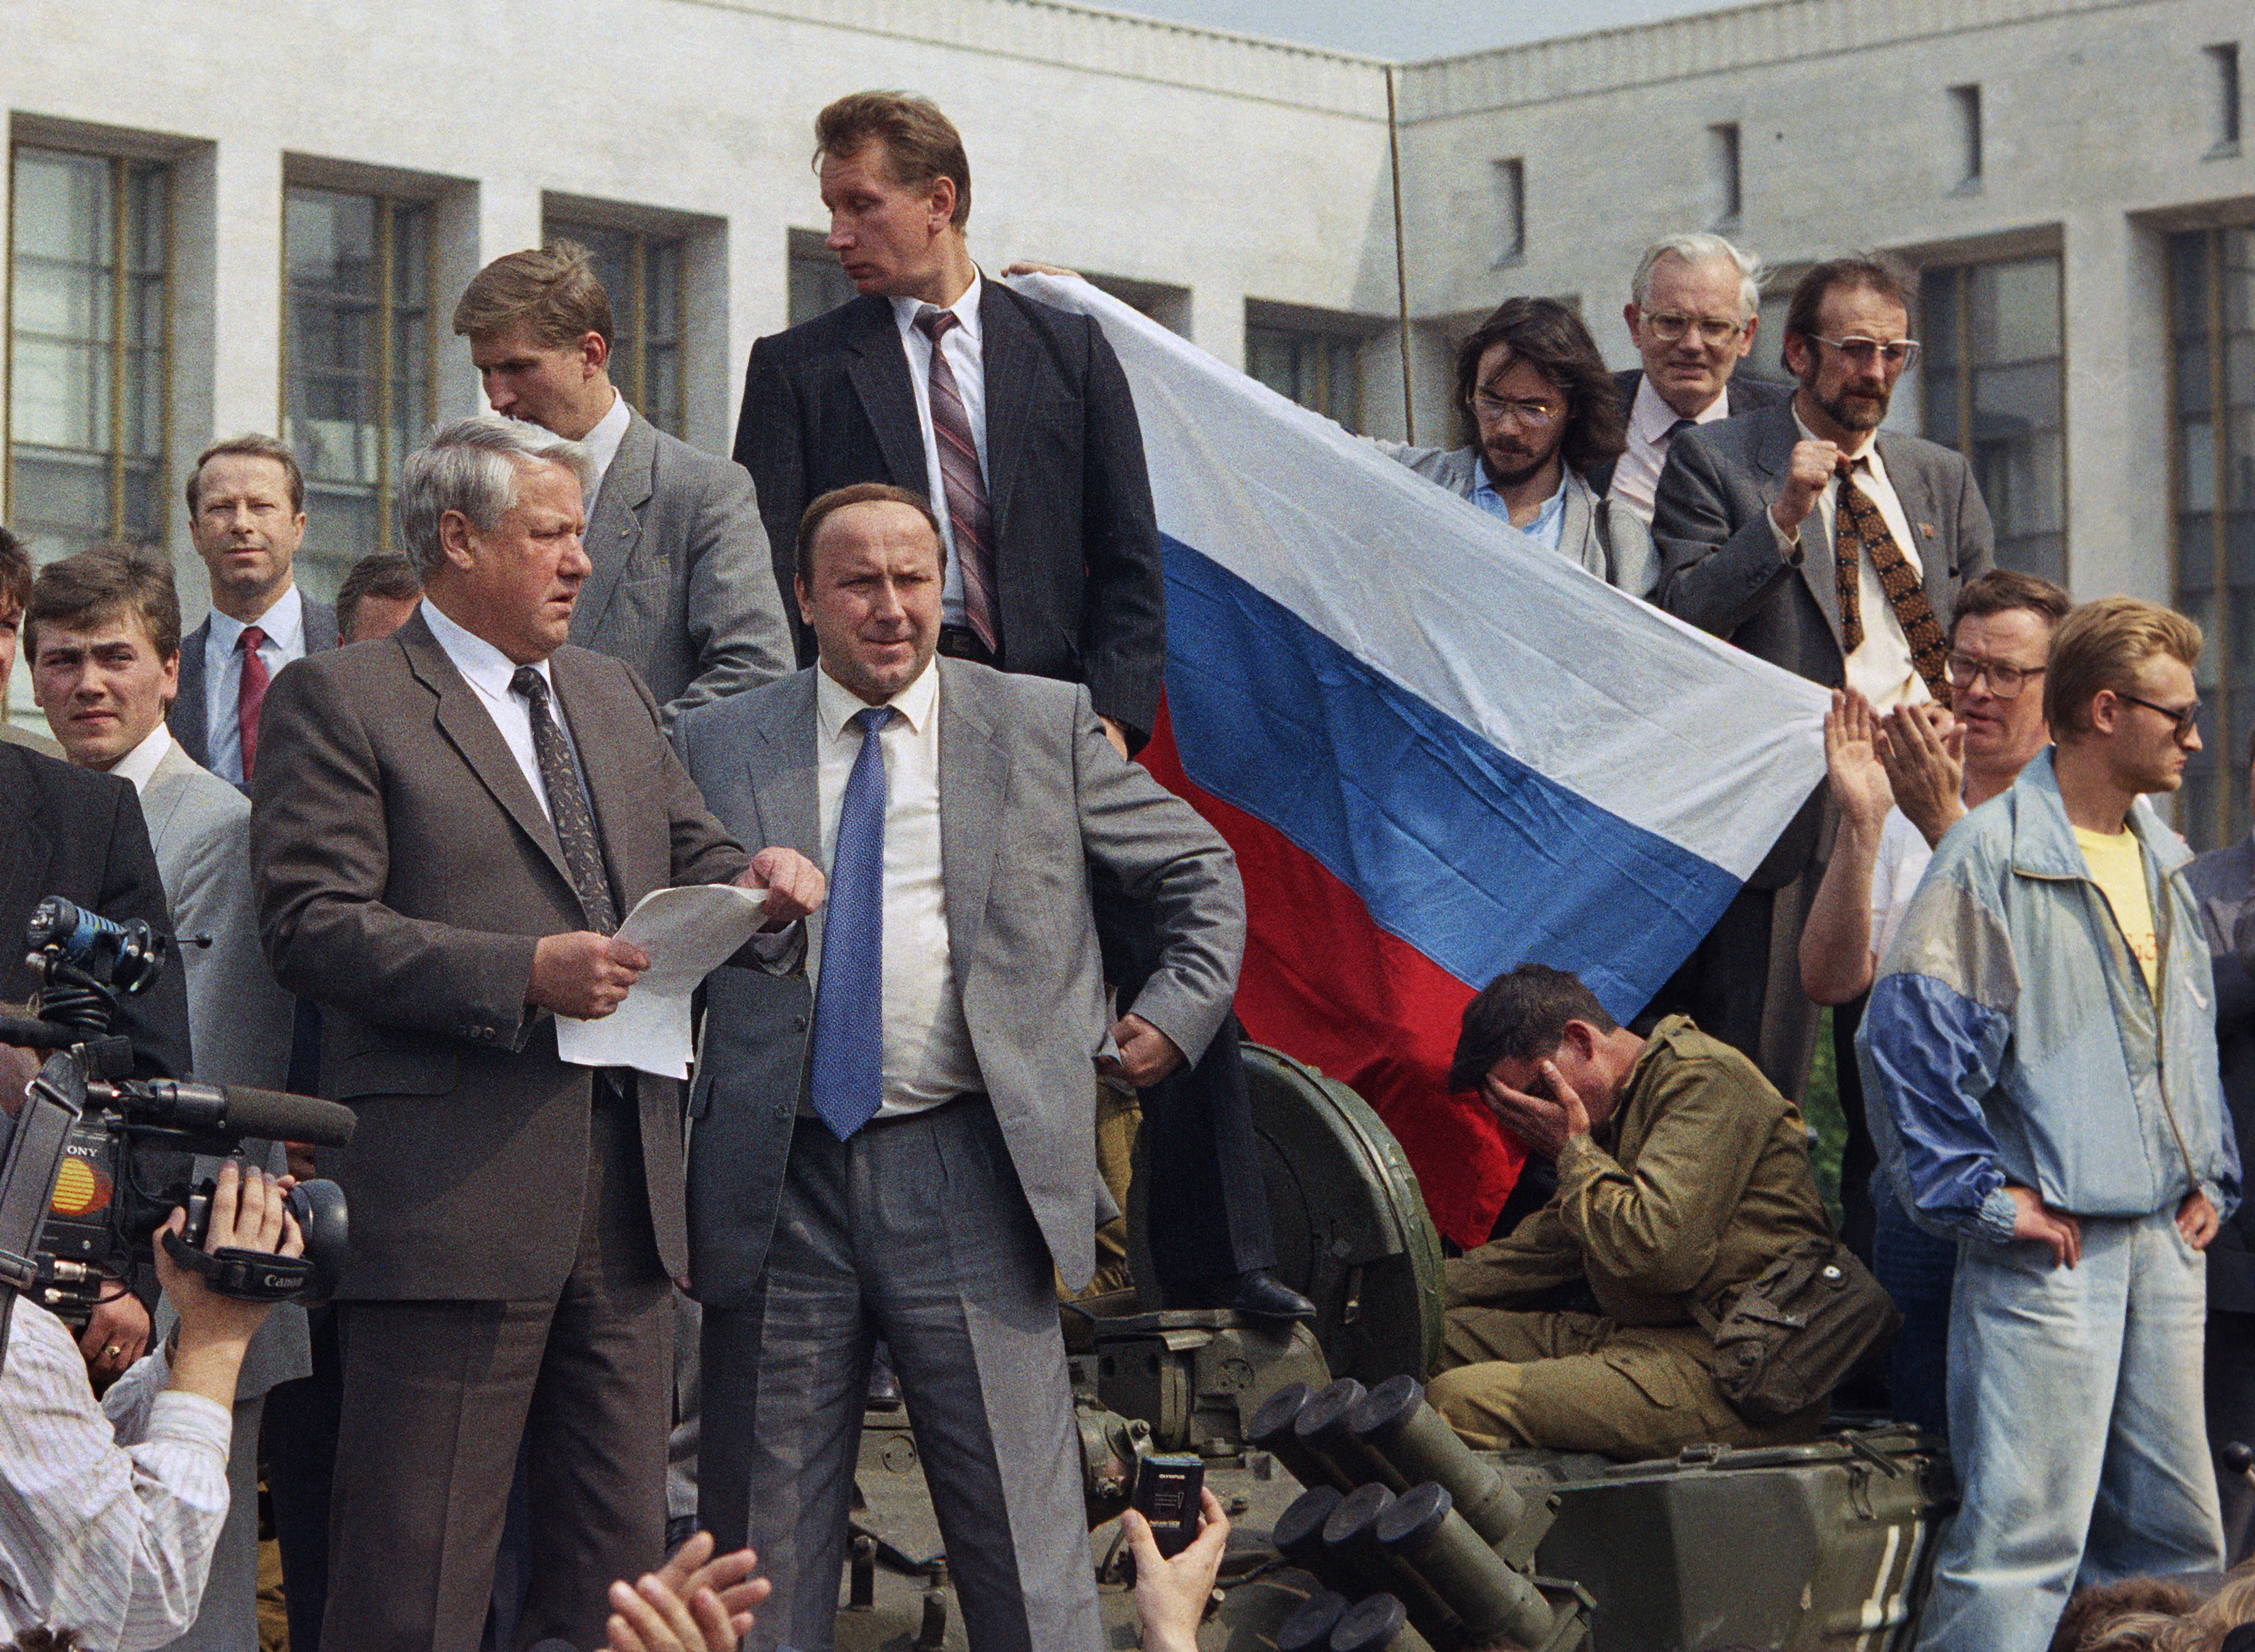 Boris Yeltsin, president of the Russian Federation, makes a speech from atop a tank in front of the Russian parliament building in Moscow, U.S.S.R., Monday, Aug. 19, 1991. Yeltsin called on the Russian people to resist the communist hard liners in the Soviet coup. (AP Photo)